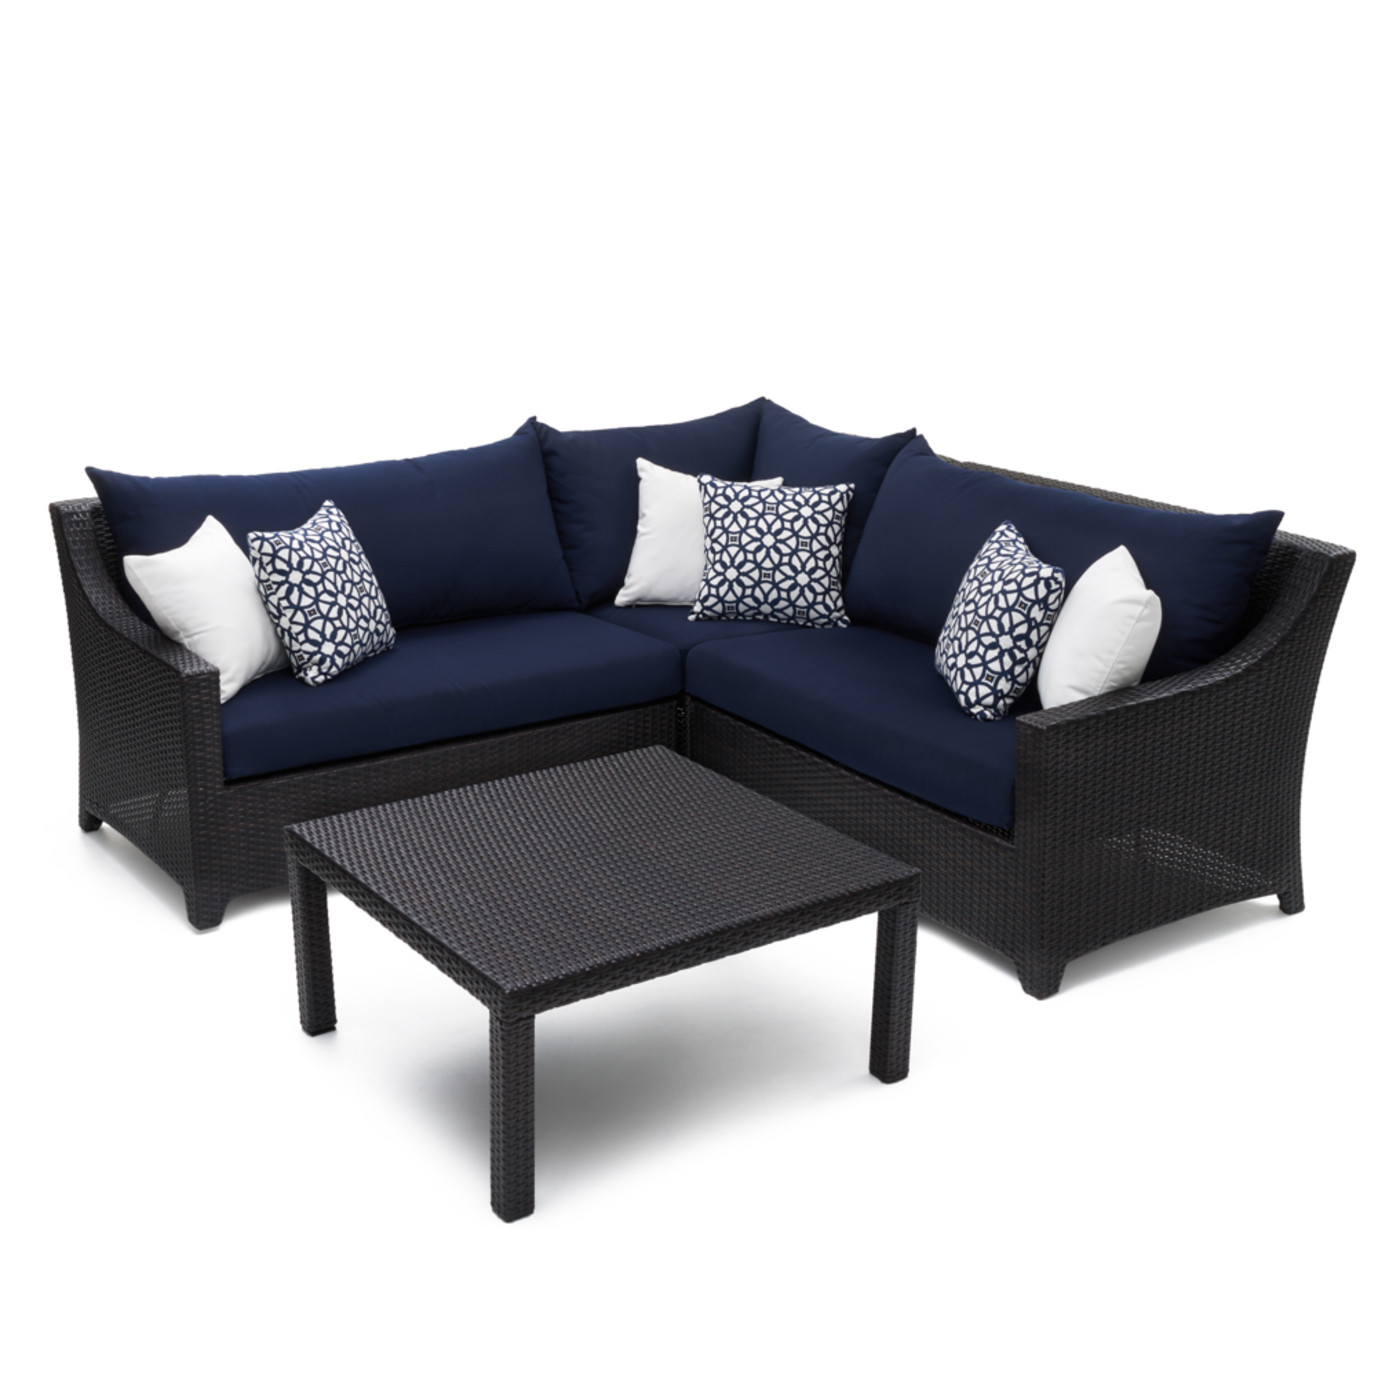 Deco™ 4pc Sectional and Table - Navy Blue